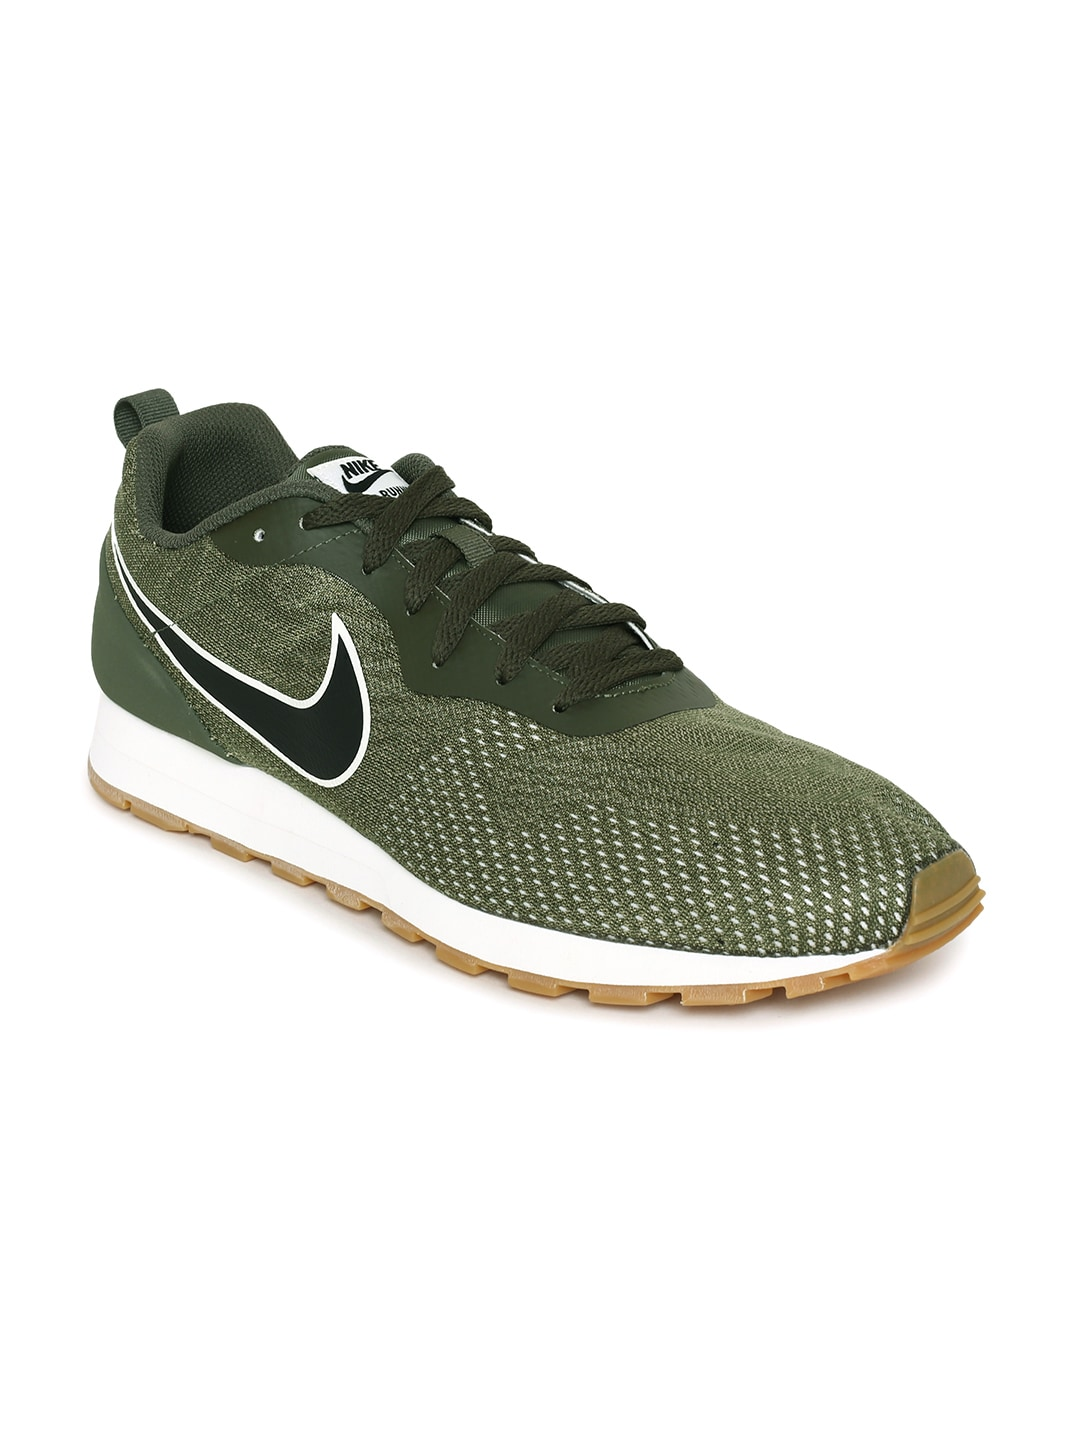 6068a805829 Nike Running Shoes - Buy Nike Running Shoes Online | Myntra